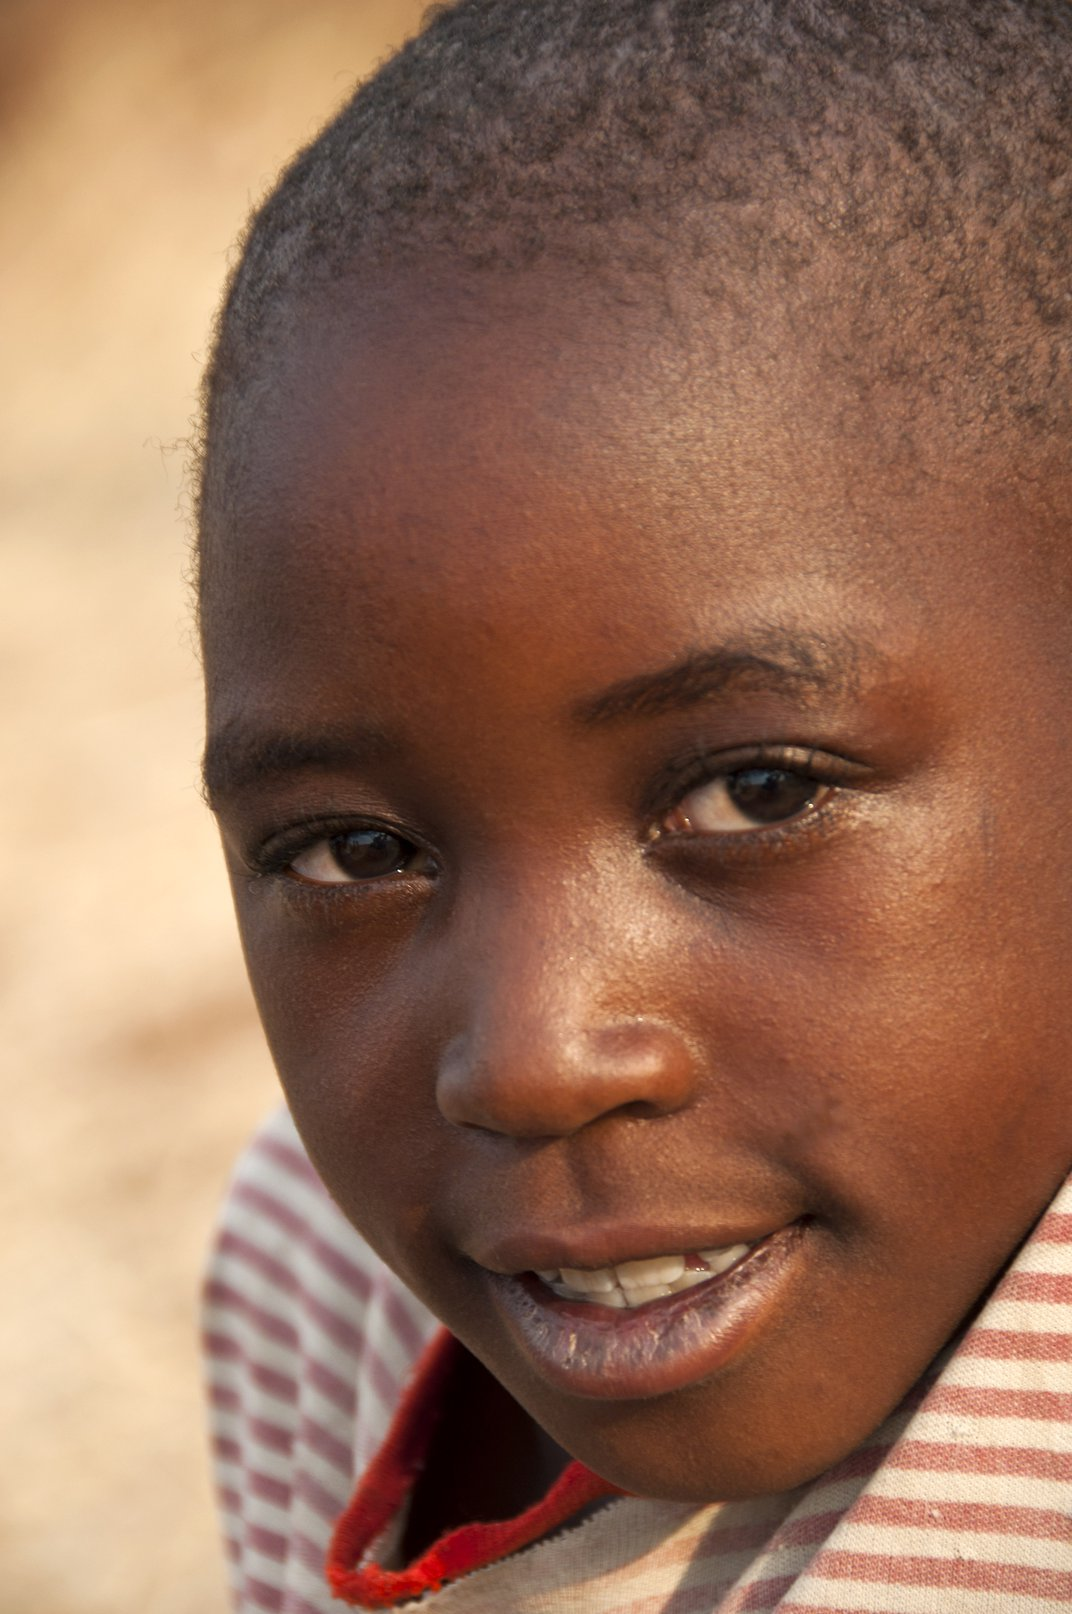 UNICEF - The Convention on the Rights of the Child